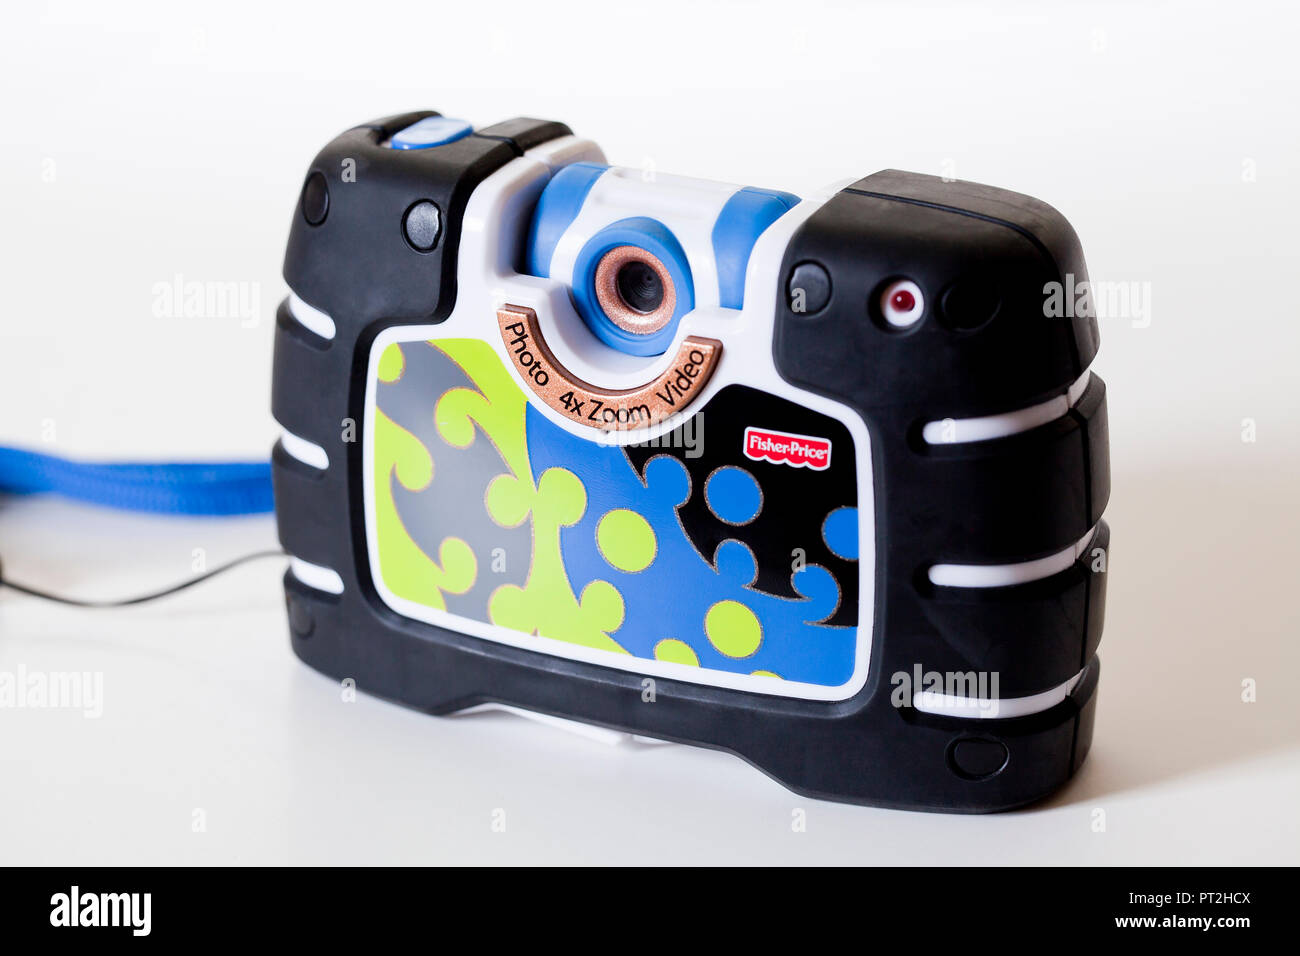 Fisher-Price Kid-Tough See Yourself Camera (Children's toy digital camera) - USA - Stock Image